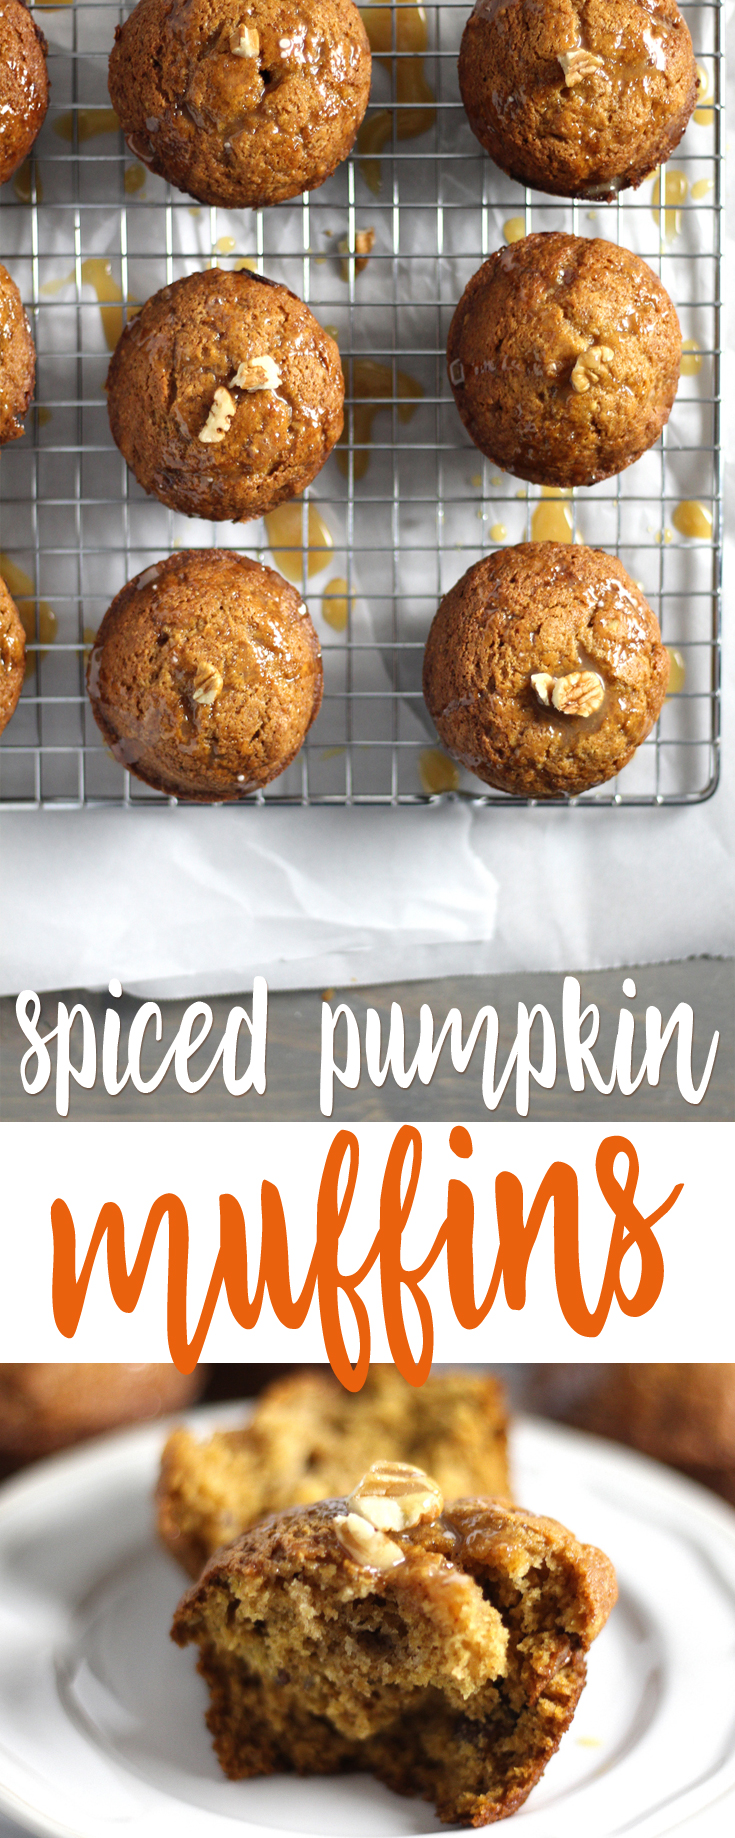 The hug-me smell of spices is enough reason to make Spiced Pumpkin Muffins. If you want your house to smell like all things Fall, muffin recipe is for you. #pumpkinmuffins